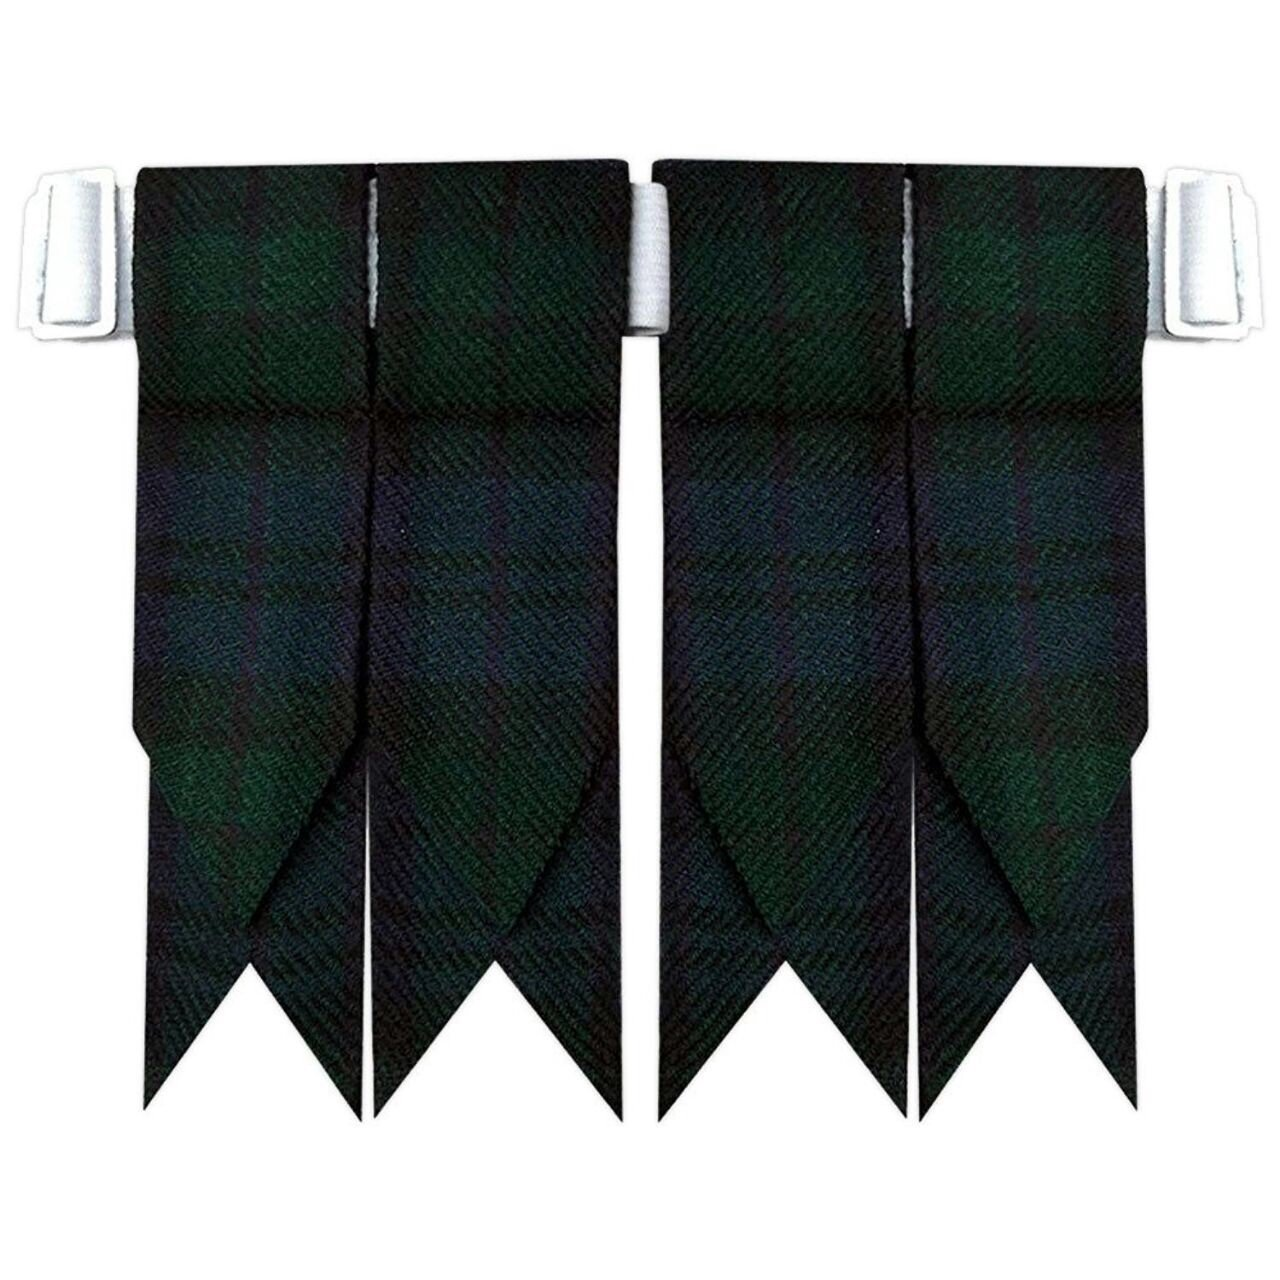 New Solid Plain Black, Royal Stewart Tartan Many More Kilt Flashes Multi Colors (Black Watch) by AAR Products